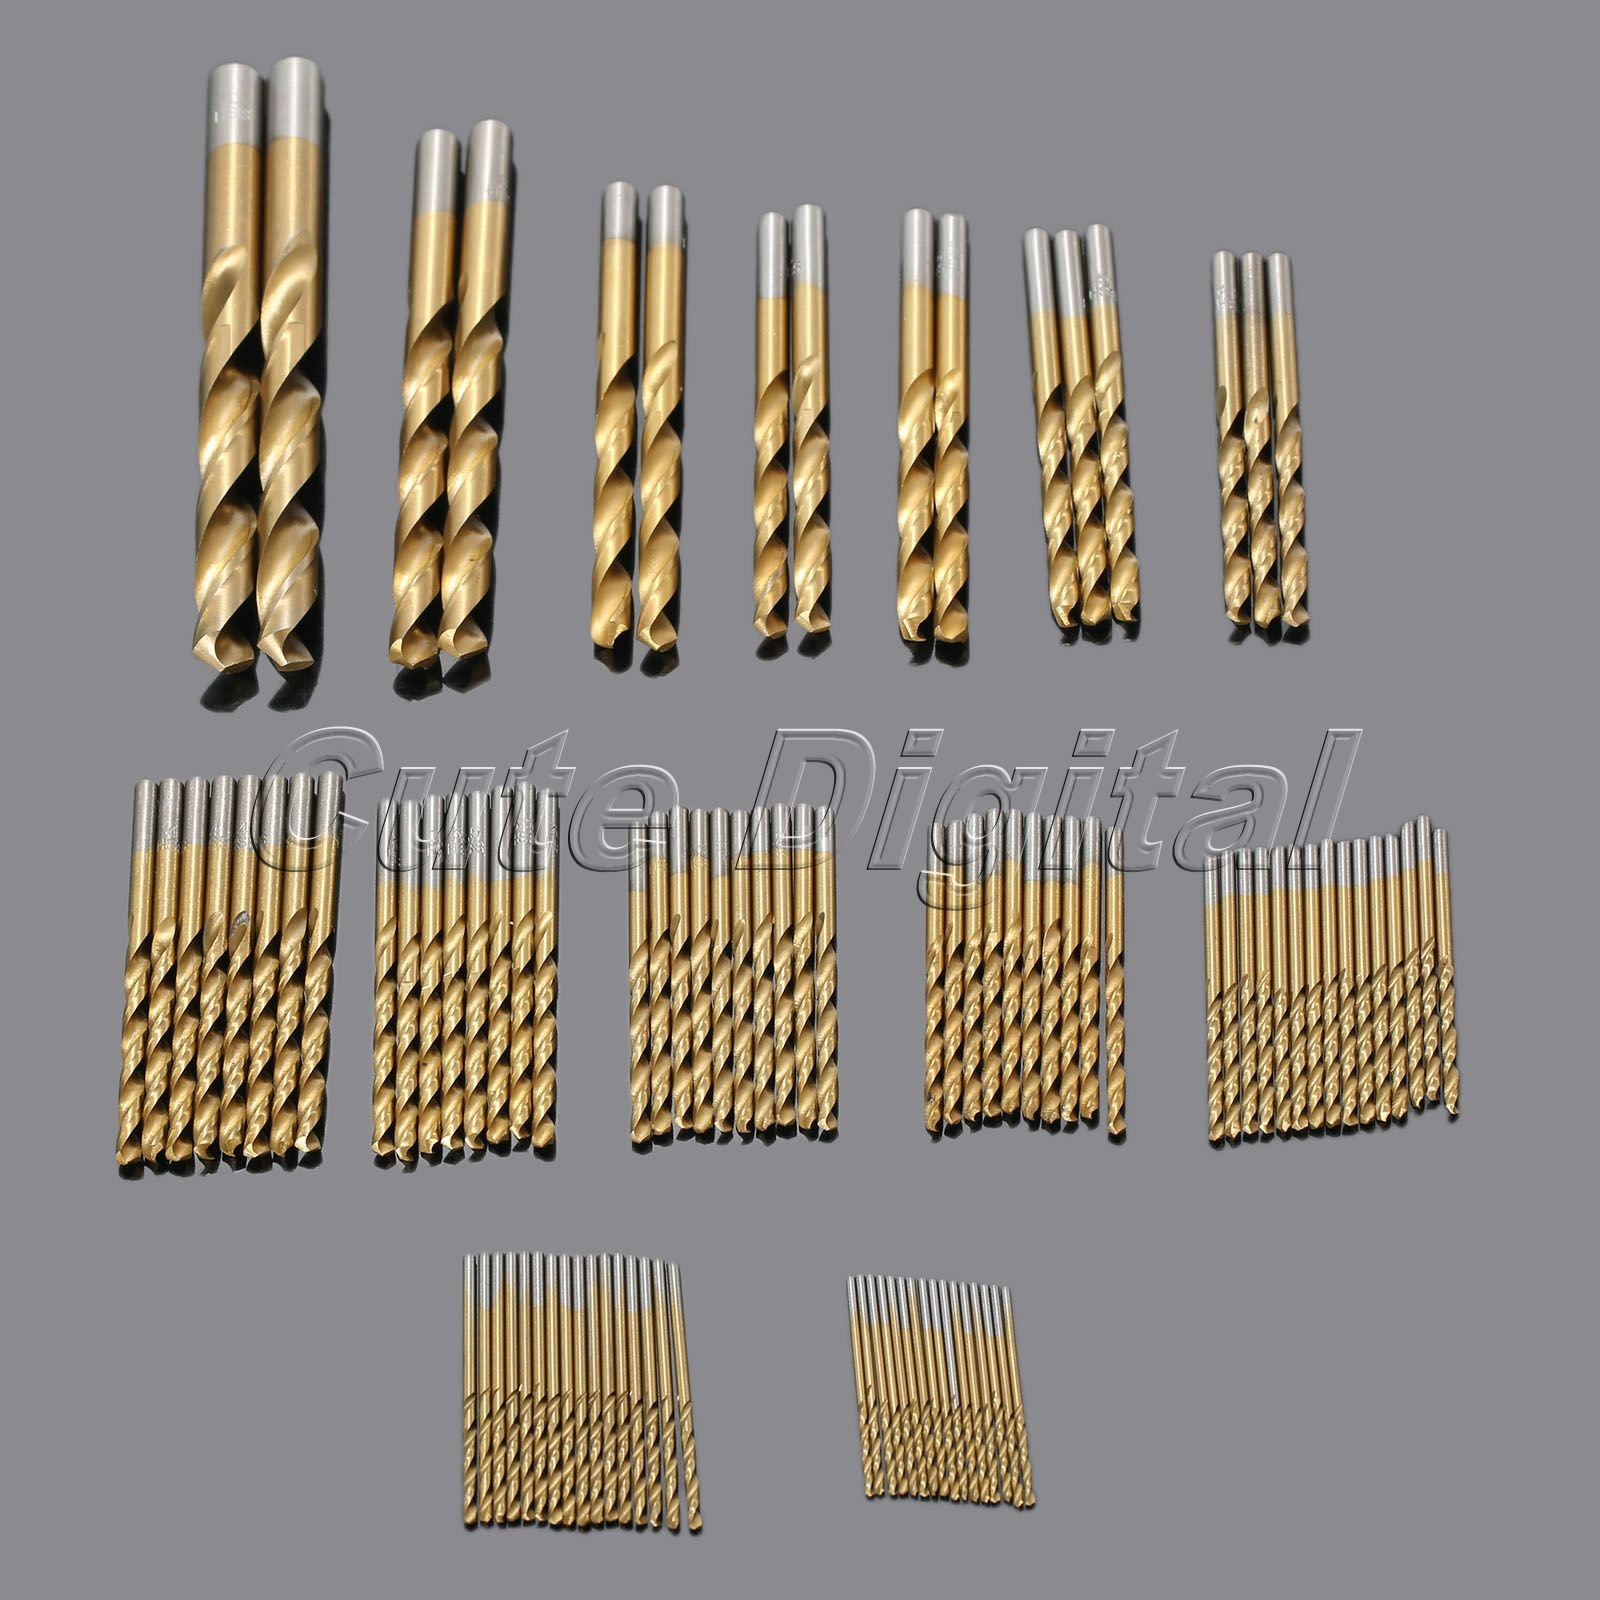 99pcs/set Titanium Coated HSS Twist Drill Bit Set High Speed Steel Drill Woodworking Power Tools Drill Accessories 1.5mm-10mm<br>